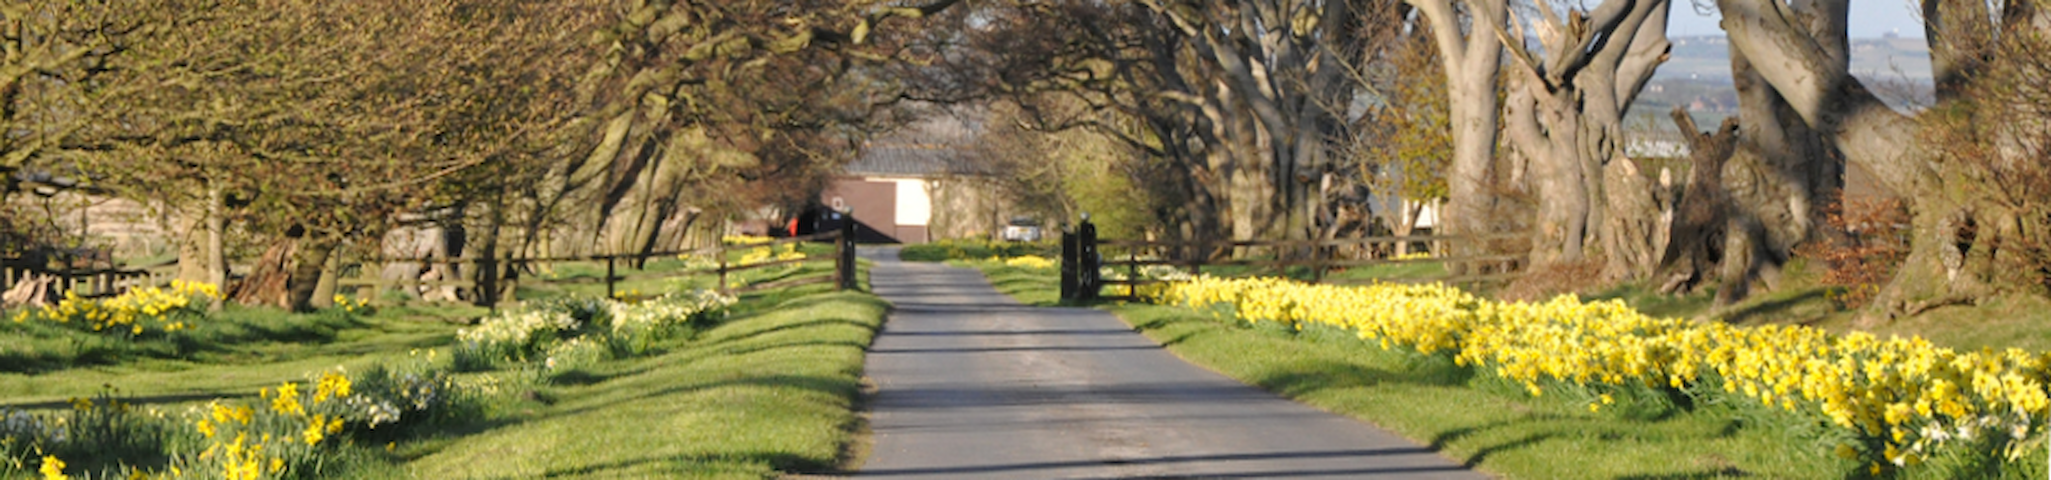 Ivesley Equestrian Centre - Durham - Bed & Breakfast